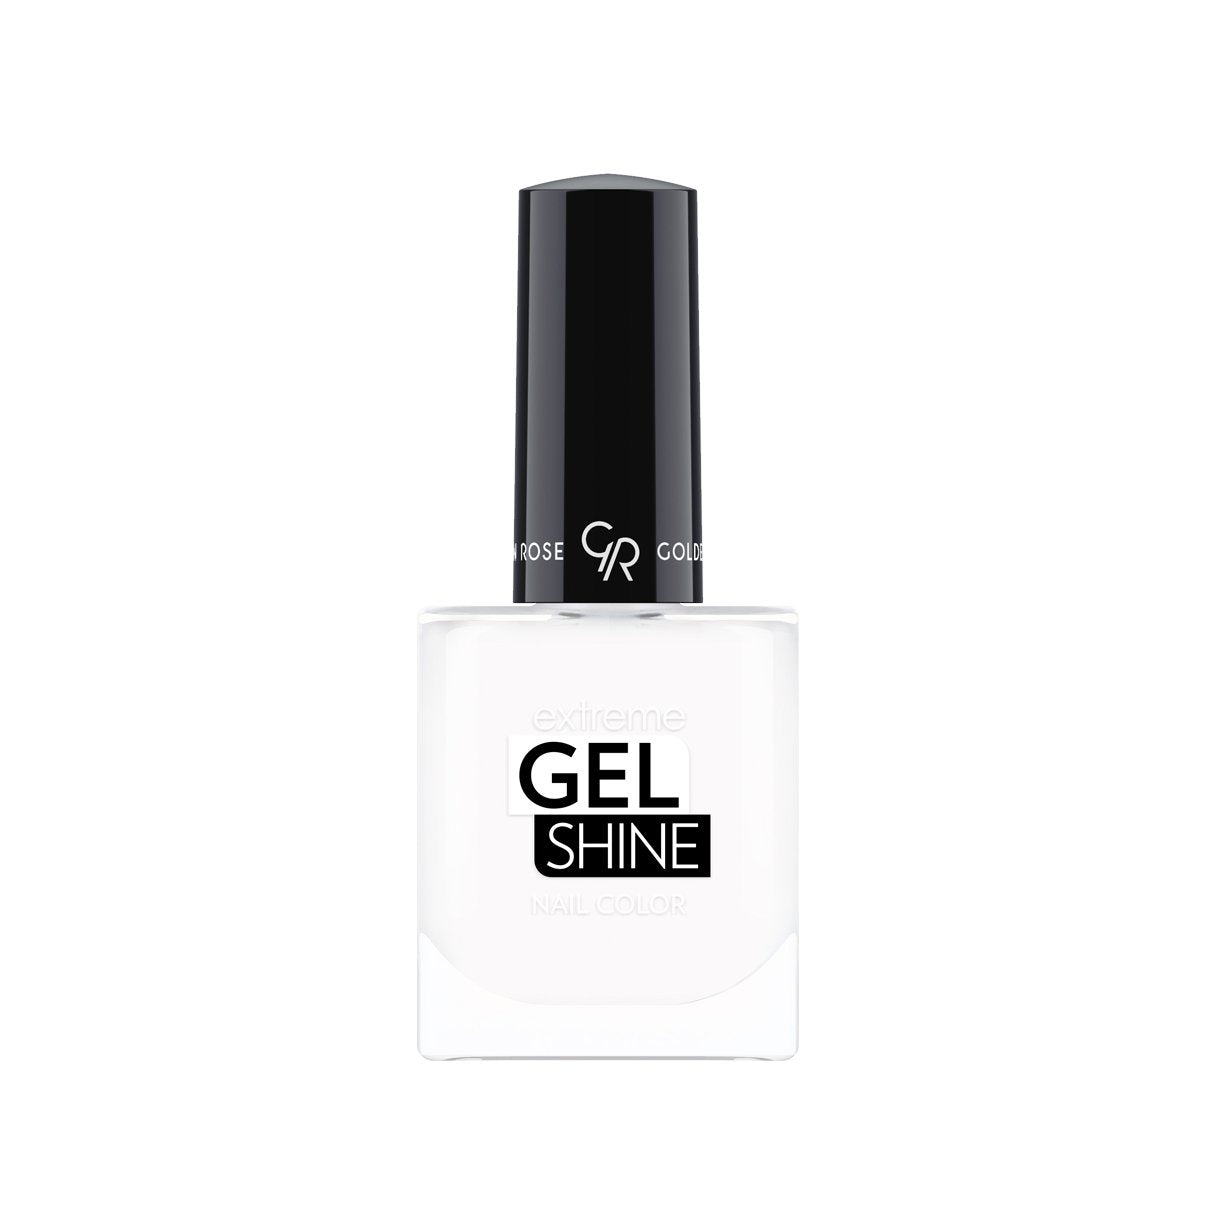 Golden Rose Extreme Gel Shine Nail Lacquer